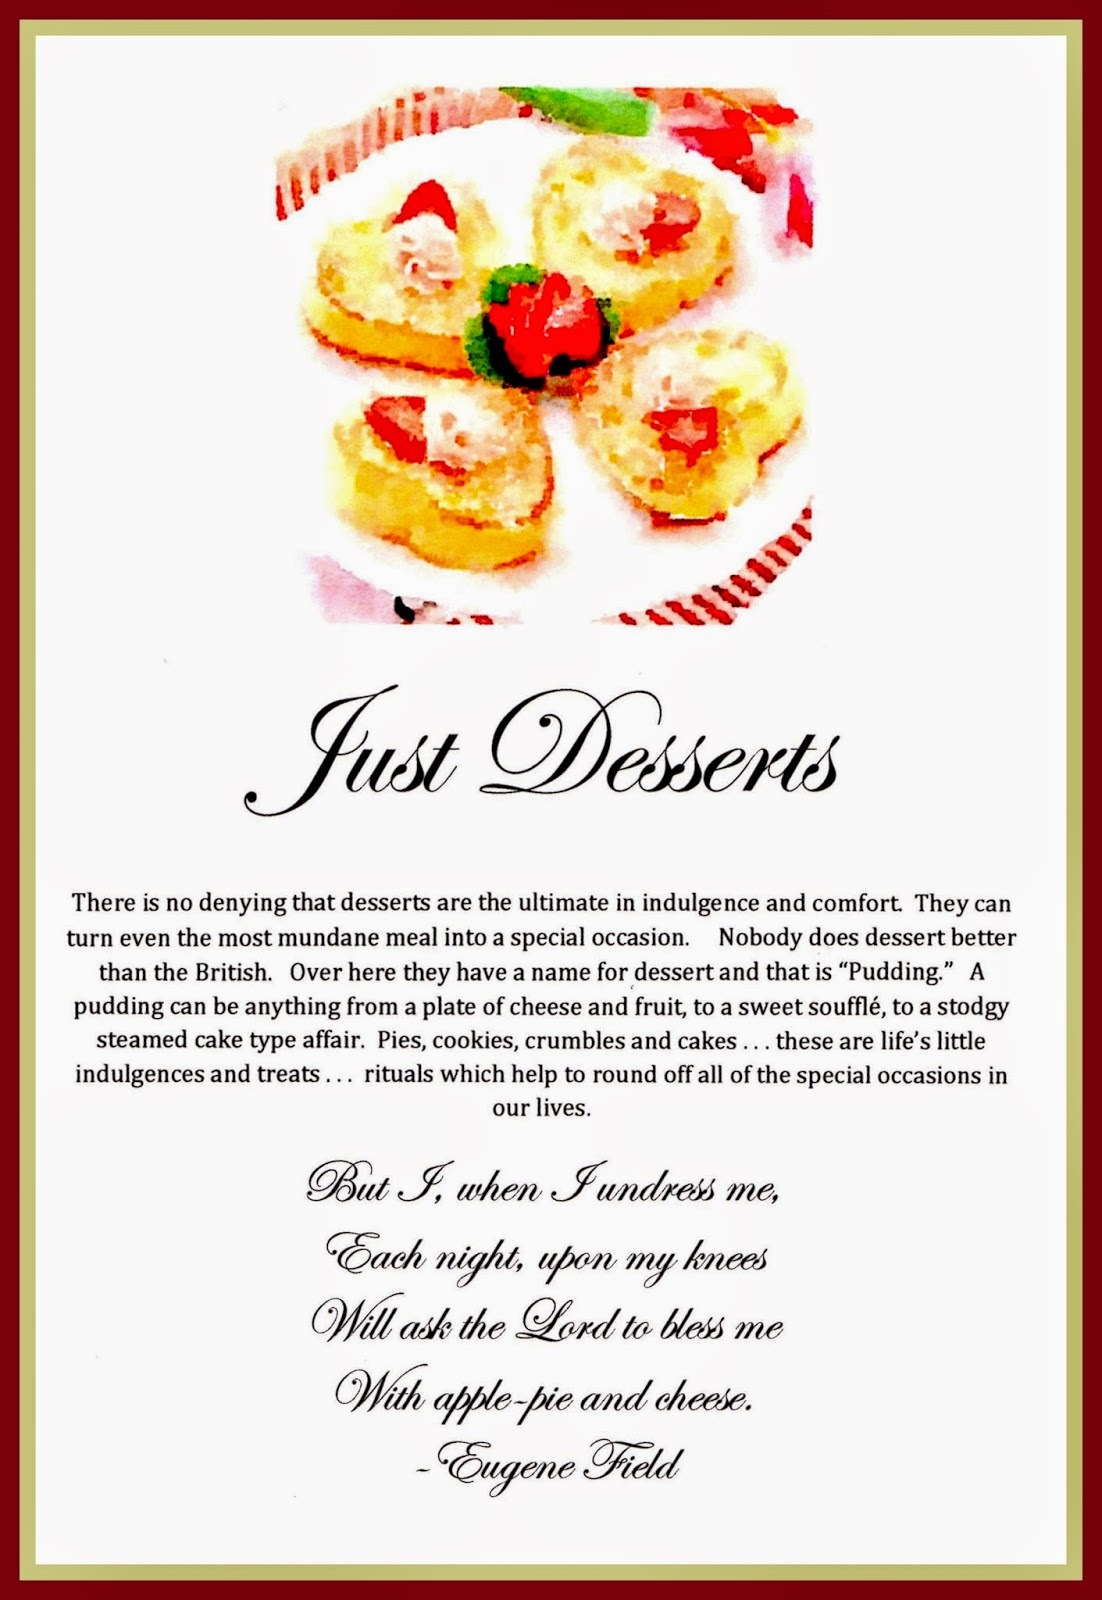 Just Desserts . . . My newest Cookbooklet